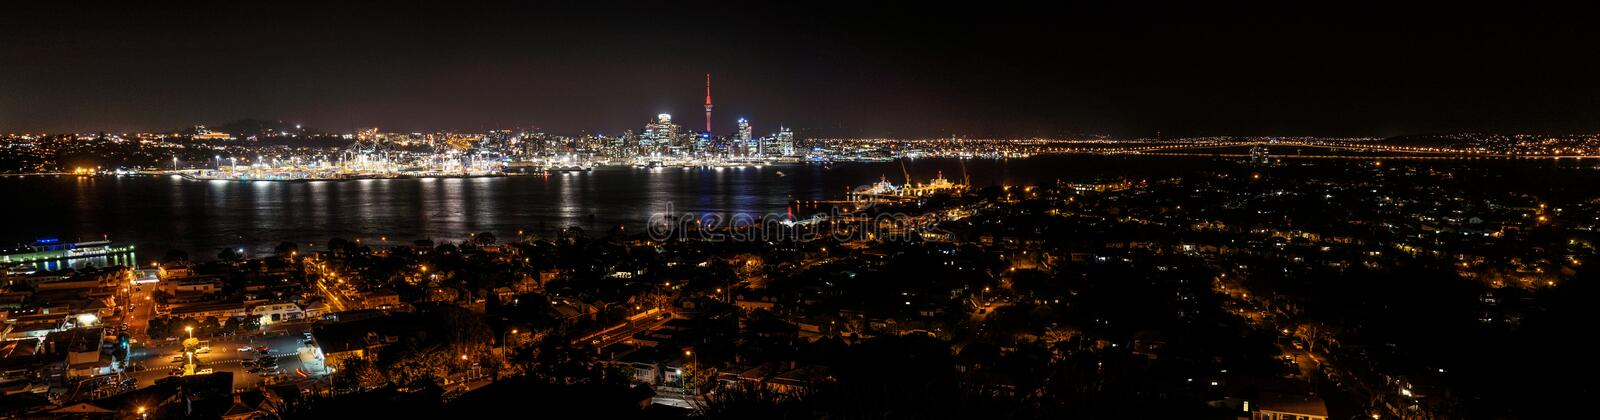 Auckland Nightscape photos stock